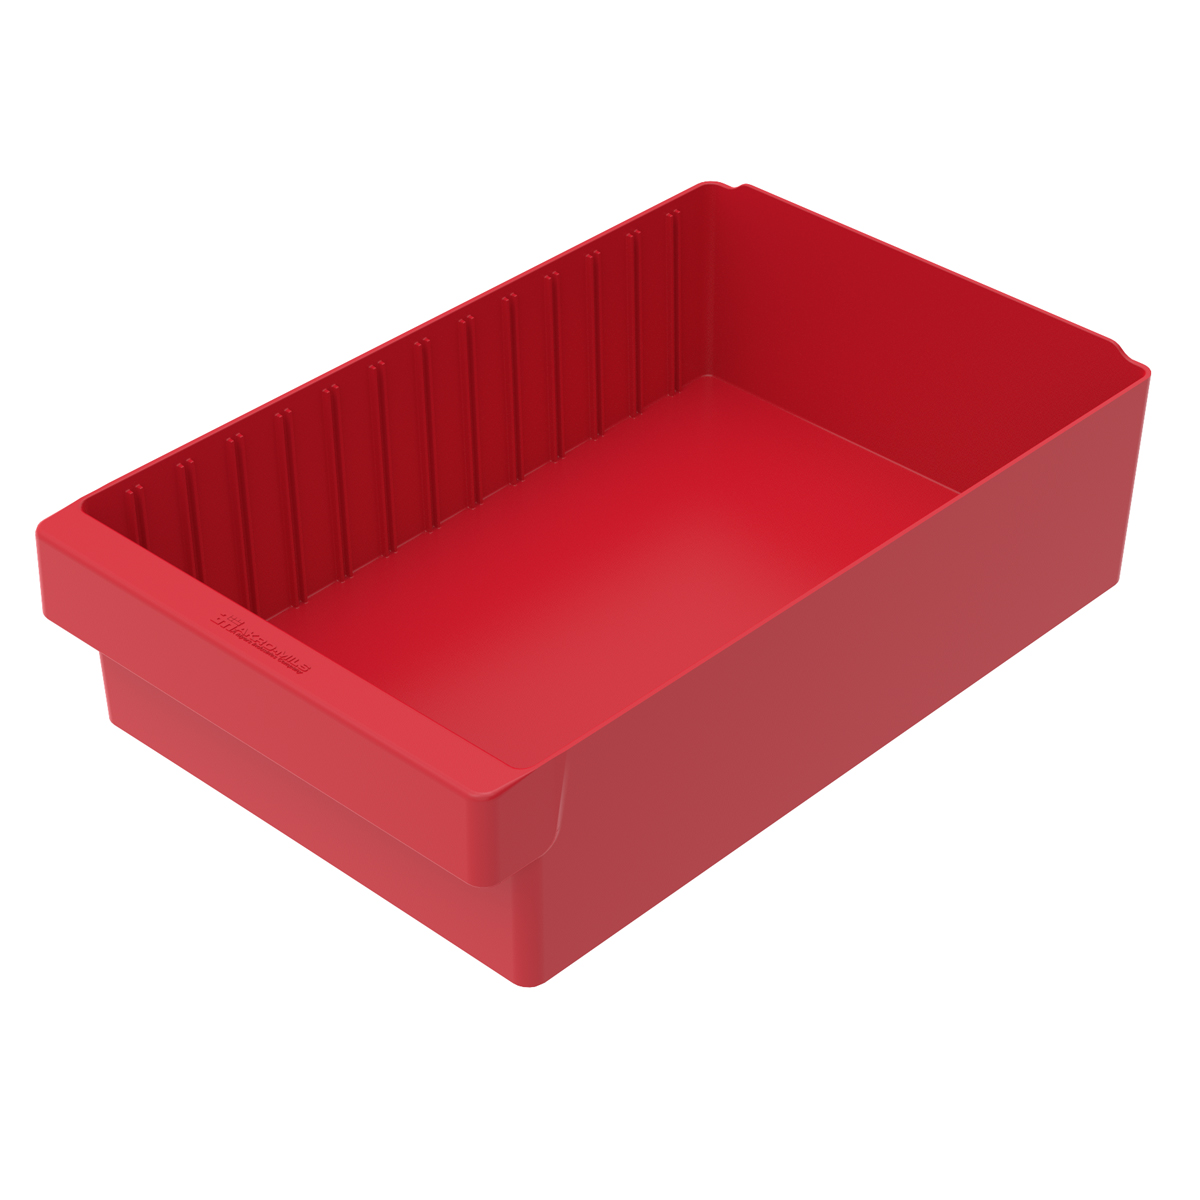 AkroDrawer 17-5/8 x 11-1/8 x 4-5/8, Red (31118RED).  This item sold in carton quantities of 4.